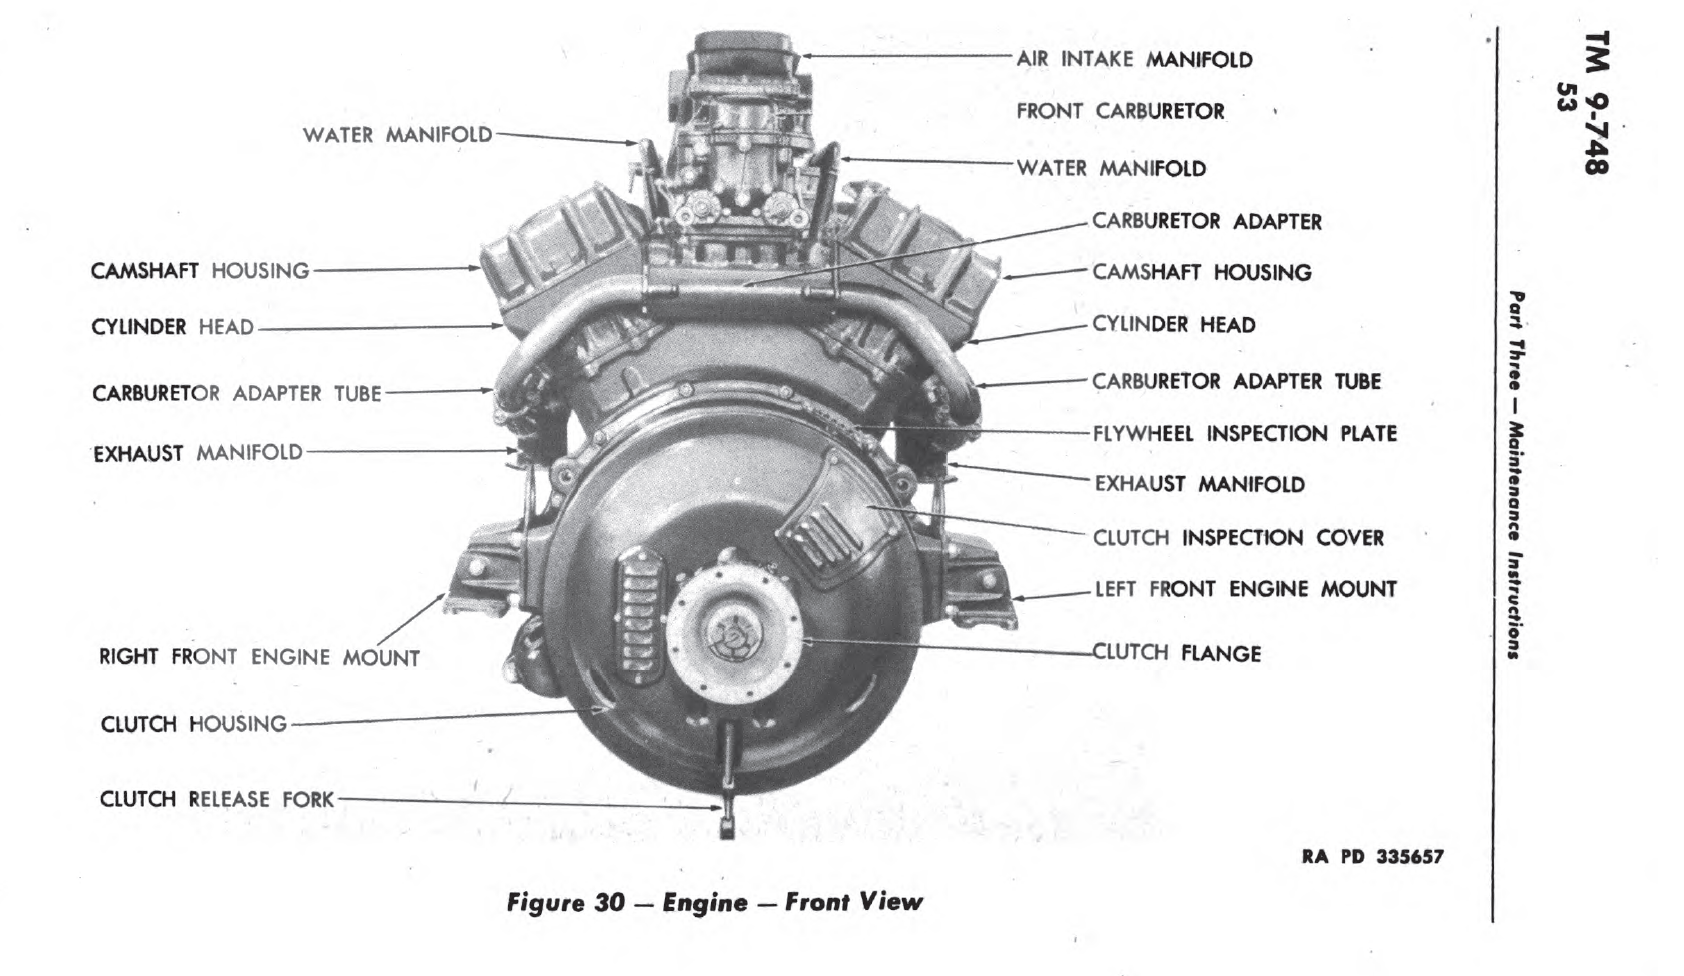 Ford Taurus 3 0 Firing Order Diagram